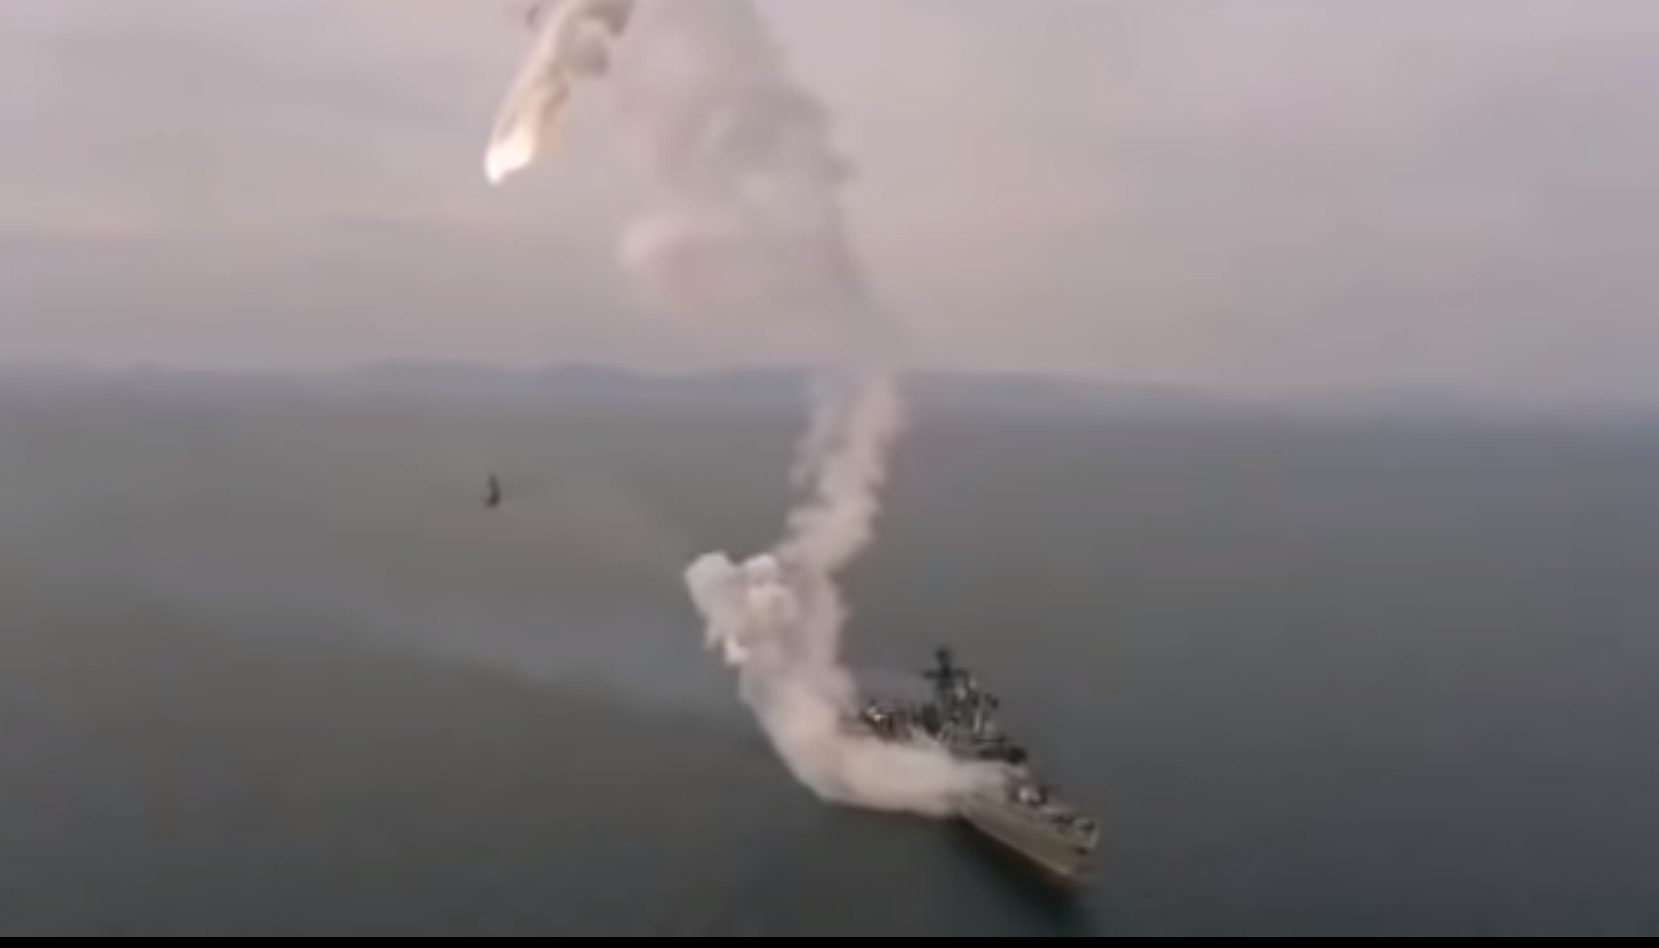 In Video: Russian Frigate 'Marshal Shaposhnikov' Failed To Launch Kalibr Cruise Missile